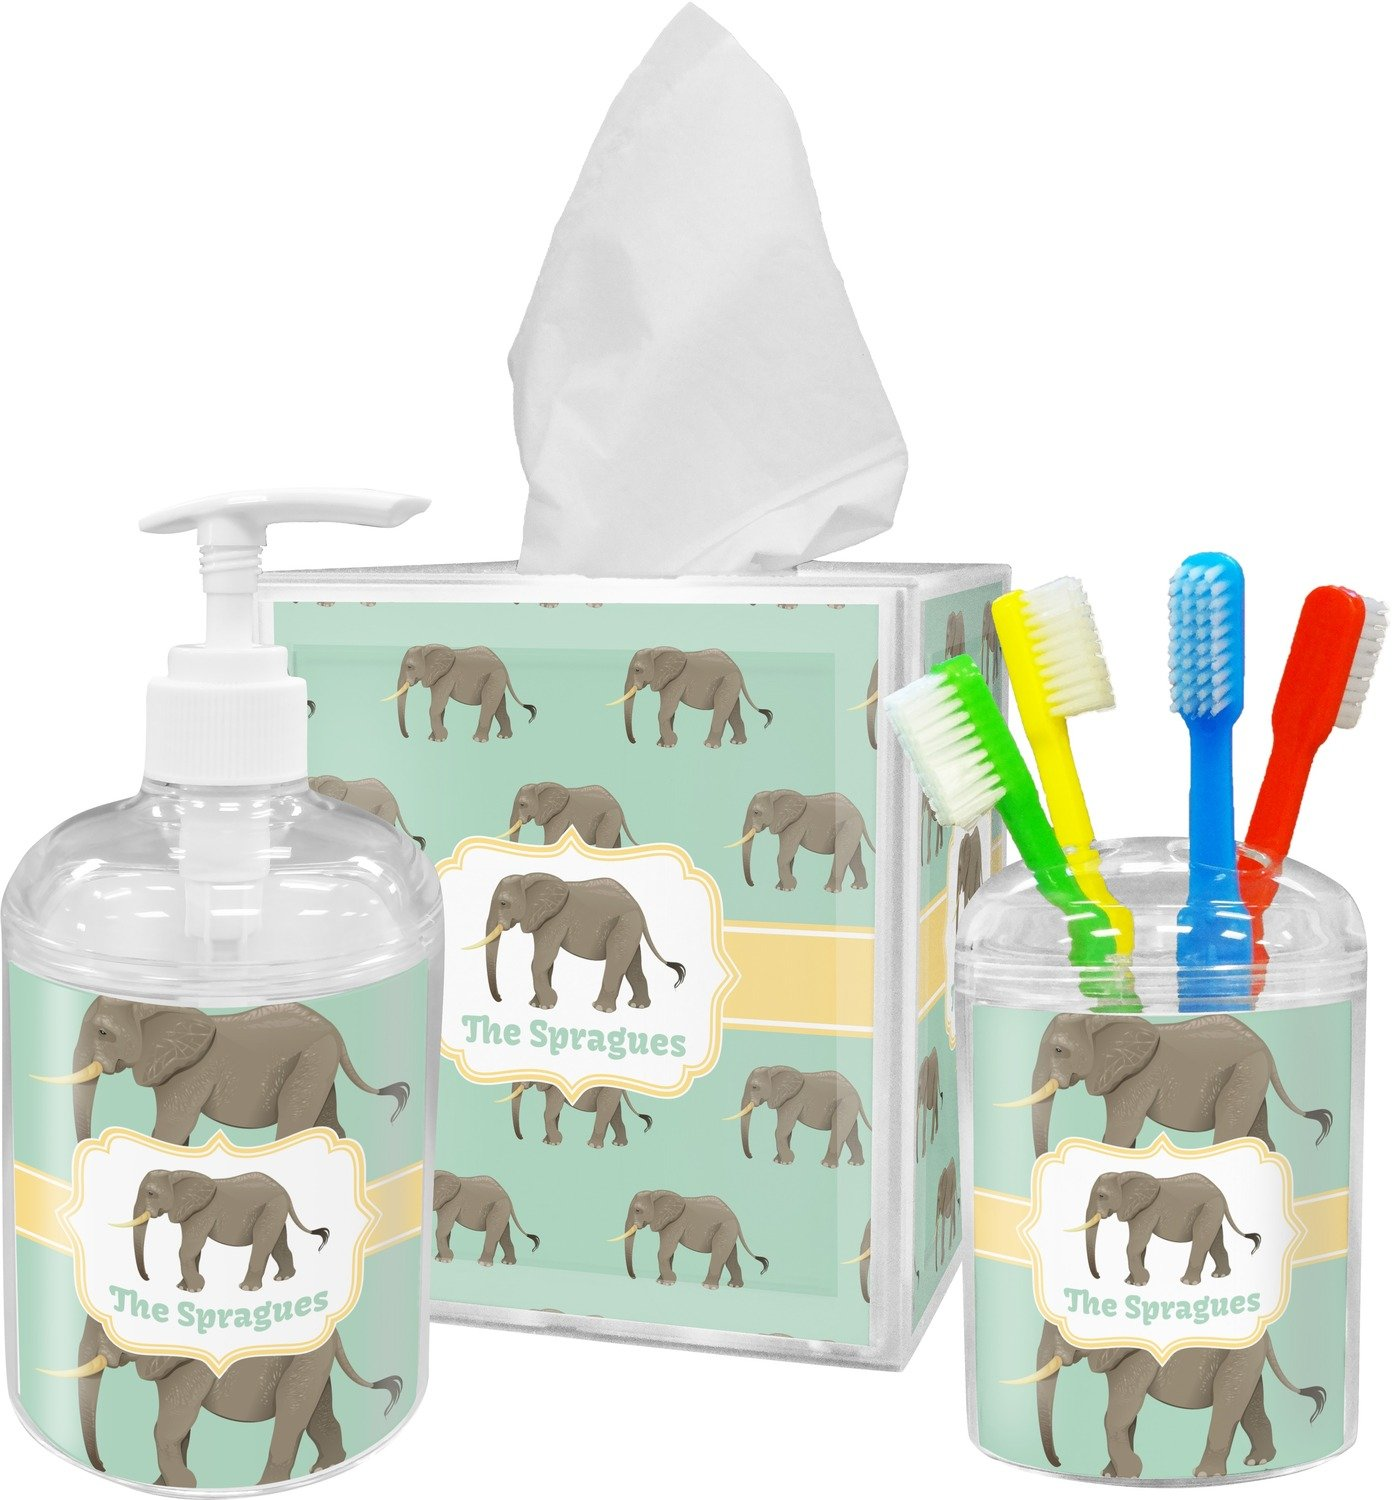 Amazon.com: Elephant Bathroom Accessories Set (Personalized): Home U0026 Kitchen